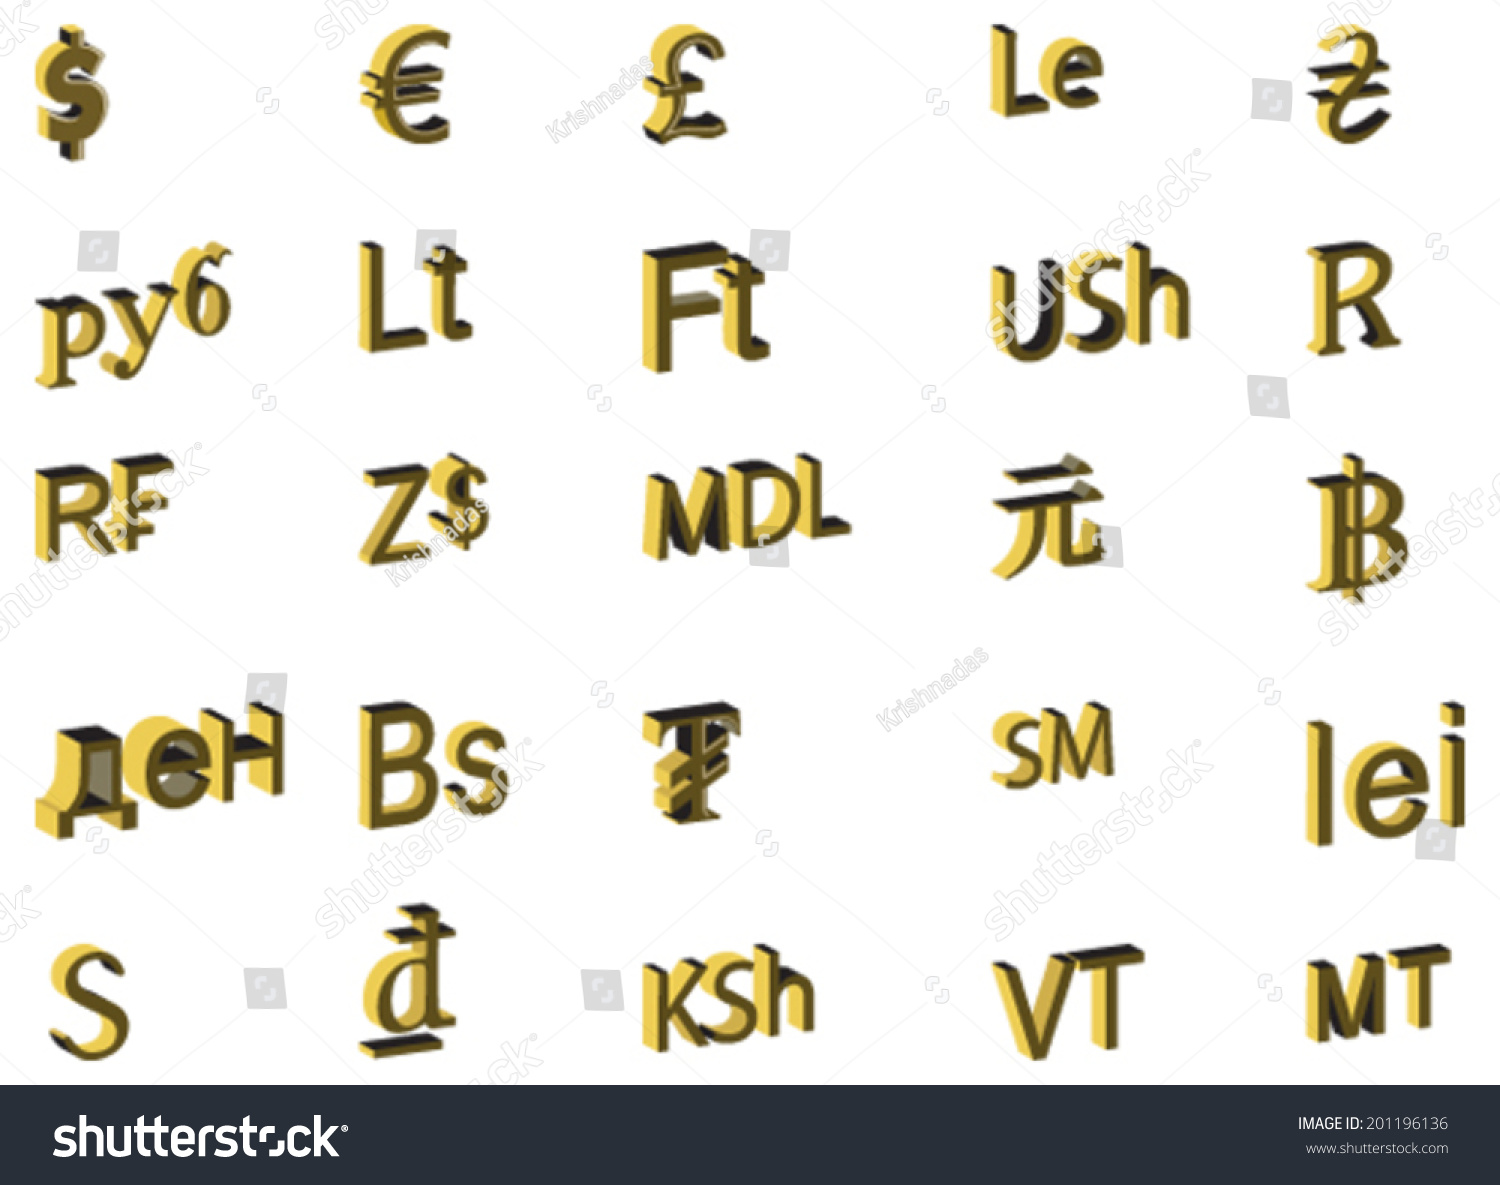 3d Vector Design Concept Currency Symbols Stock Vector Hd Royalty